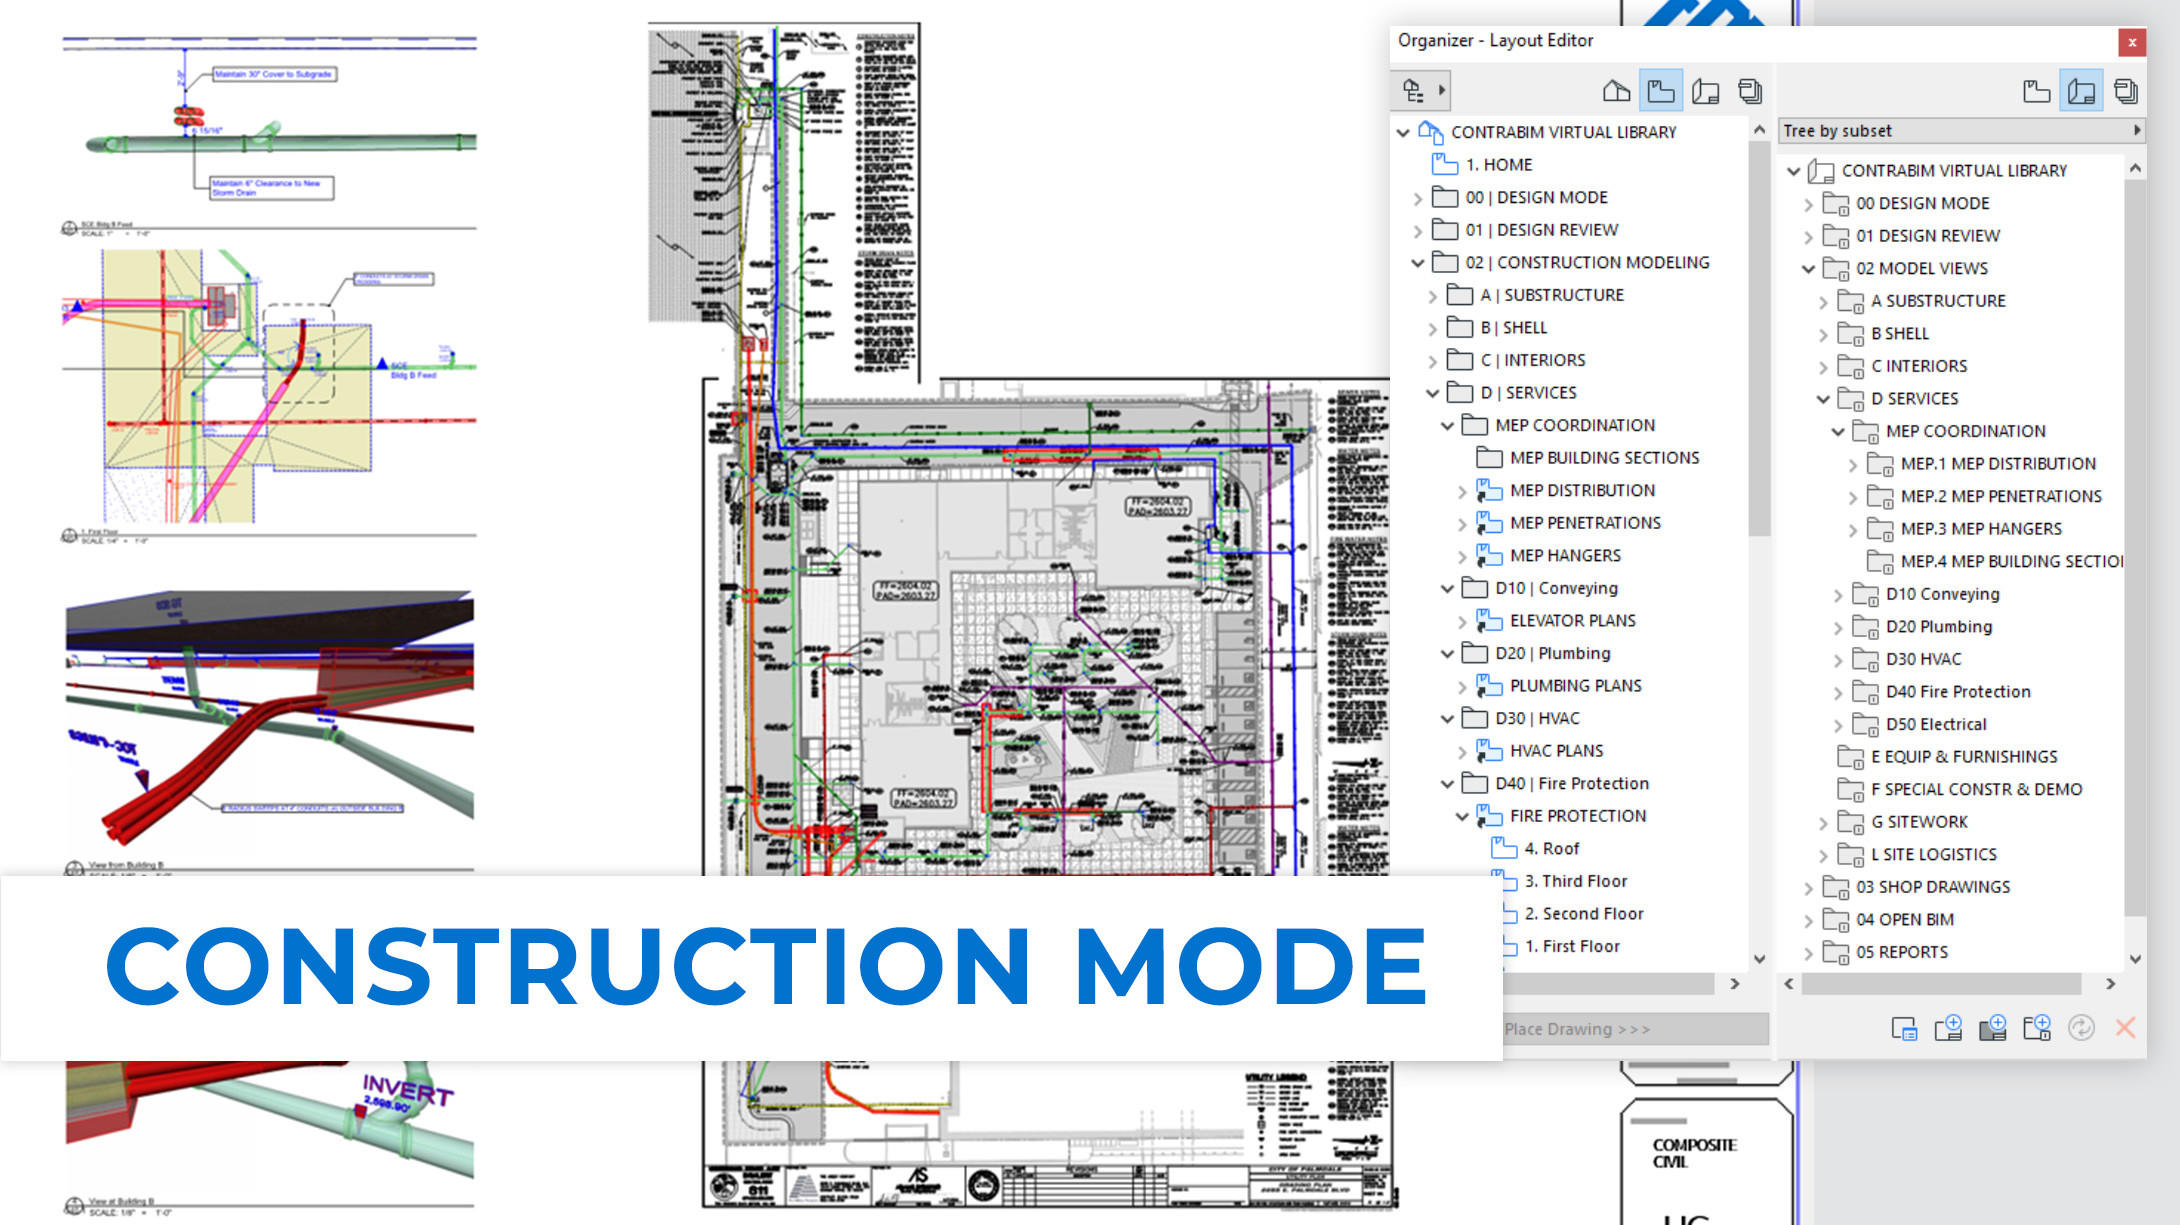 CONTRABIM Construction Mode